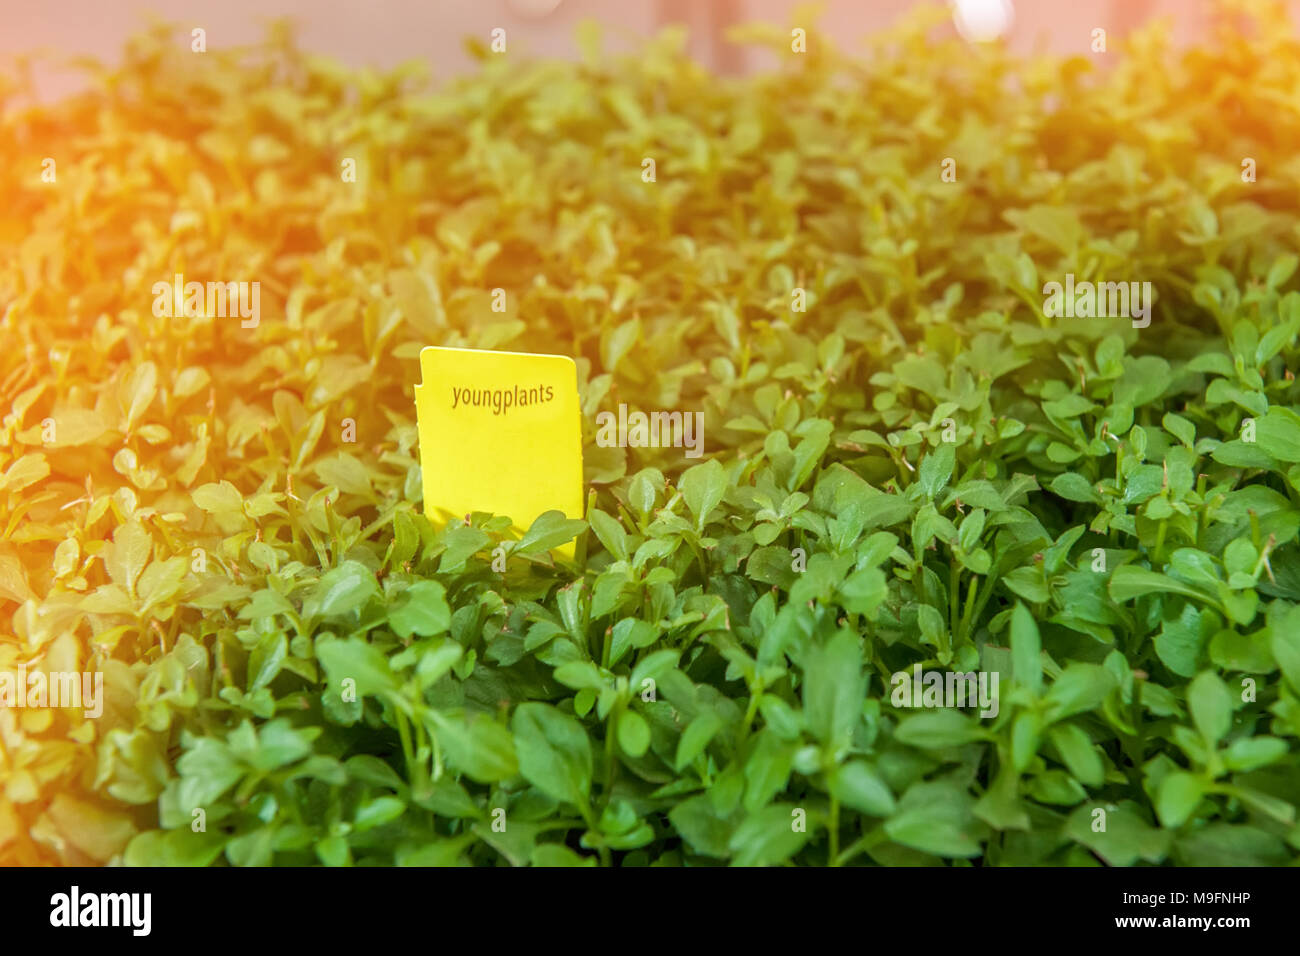 Seedlings Of Flowers And Vegetables Growing In Foam Containers In